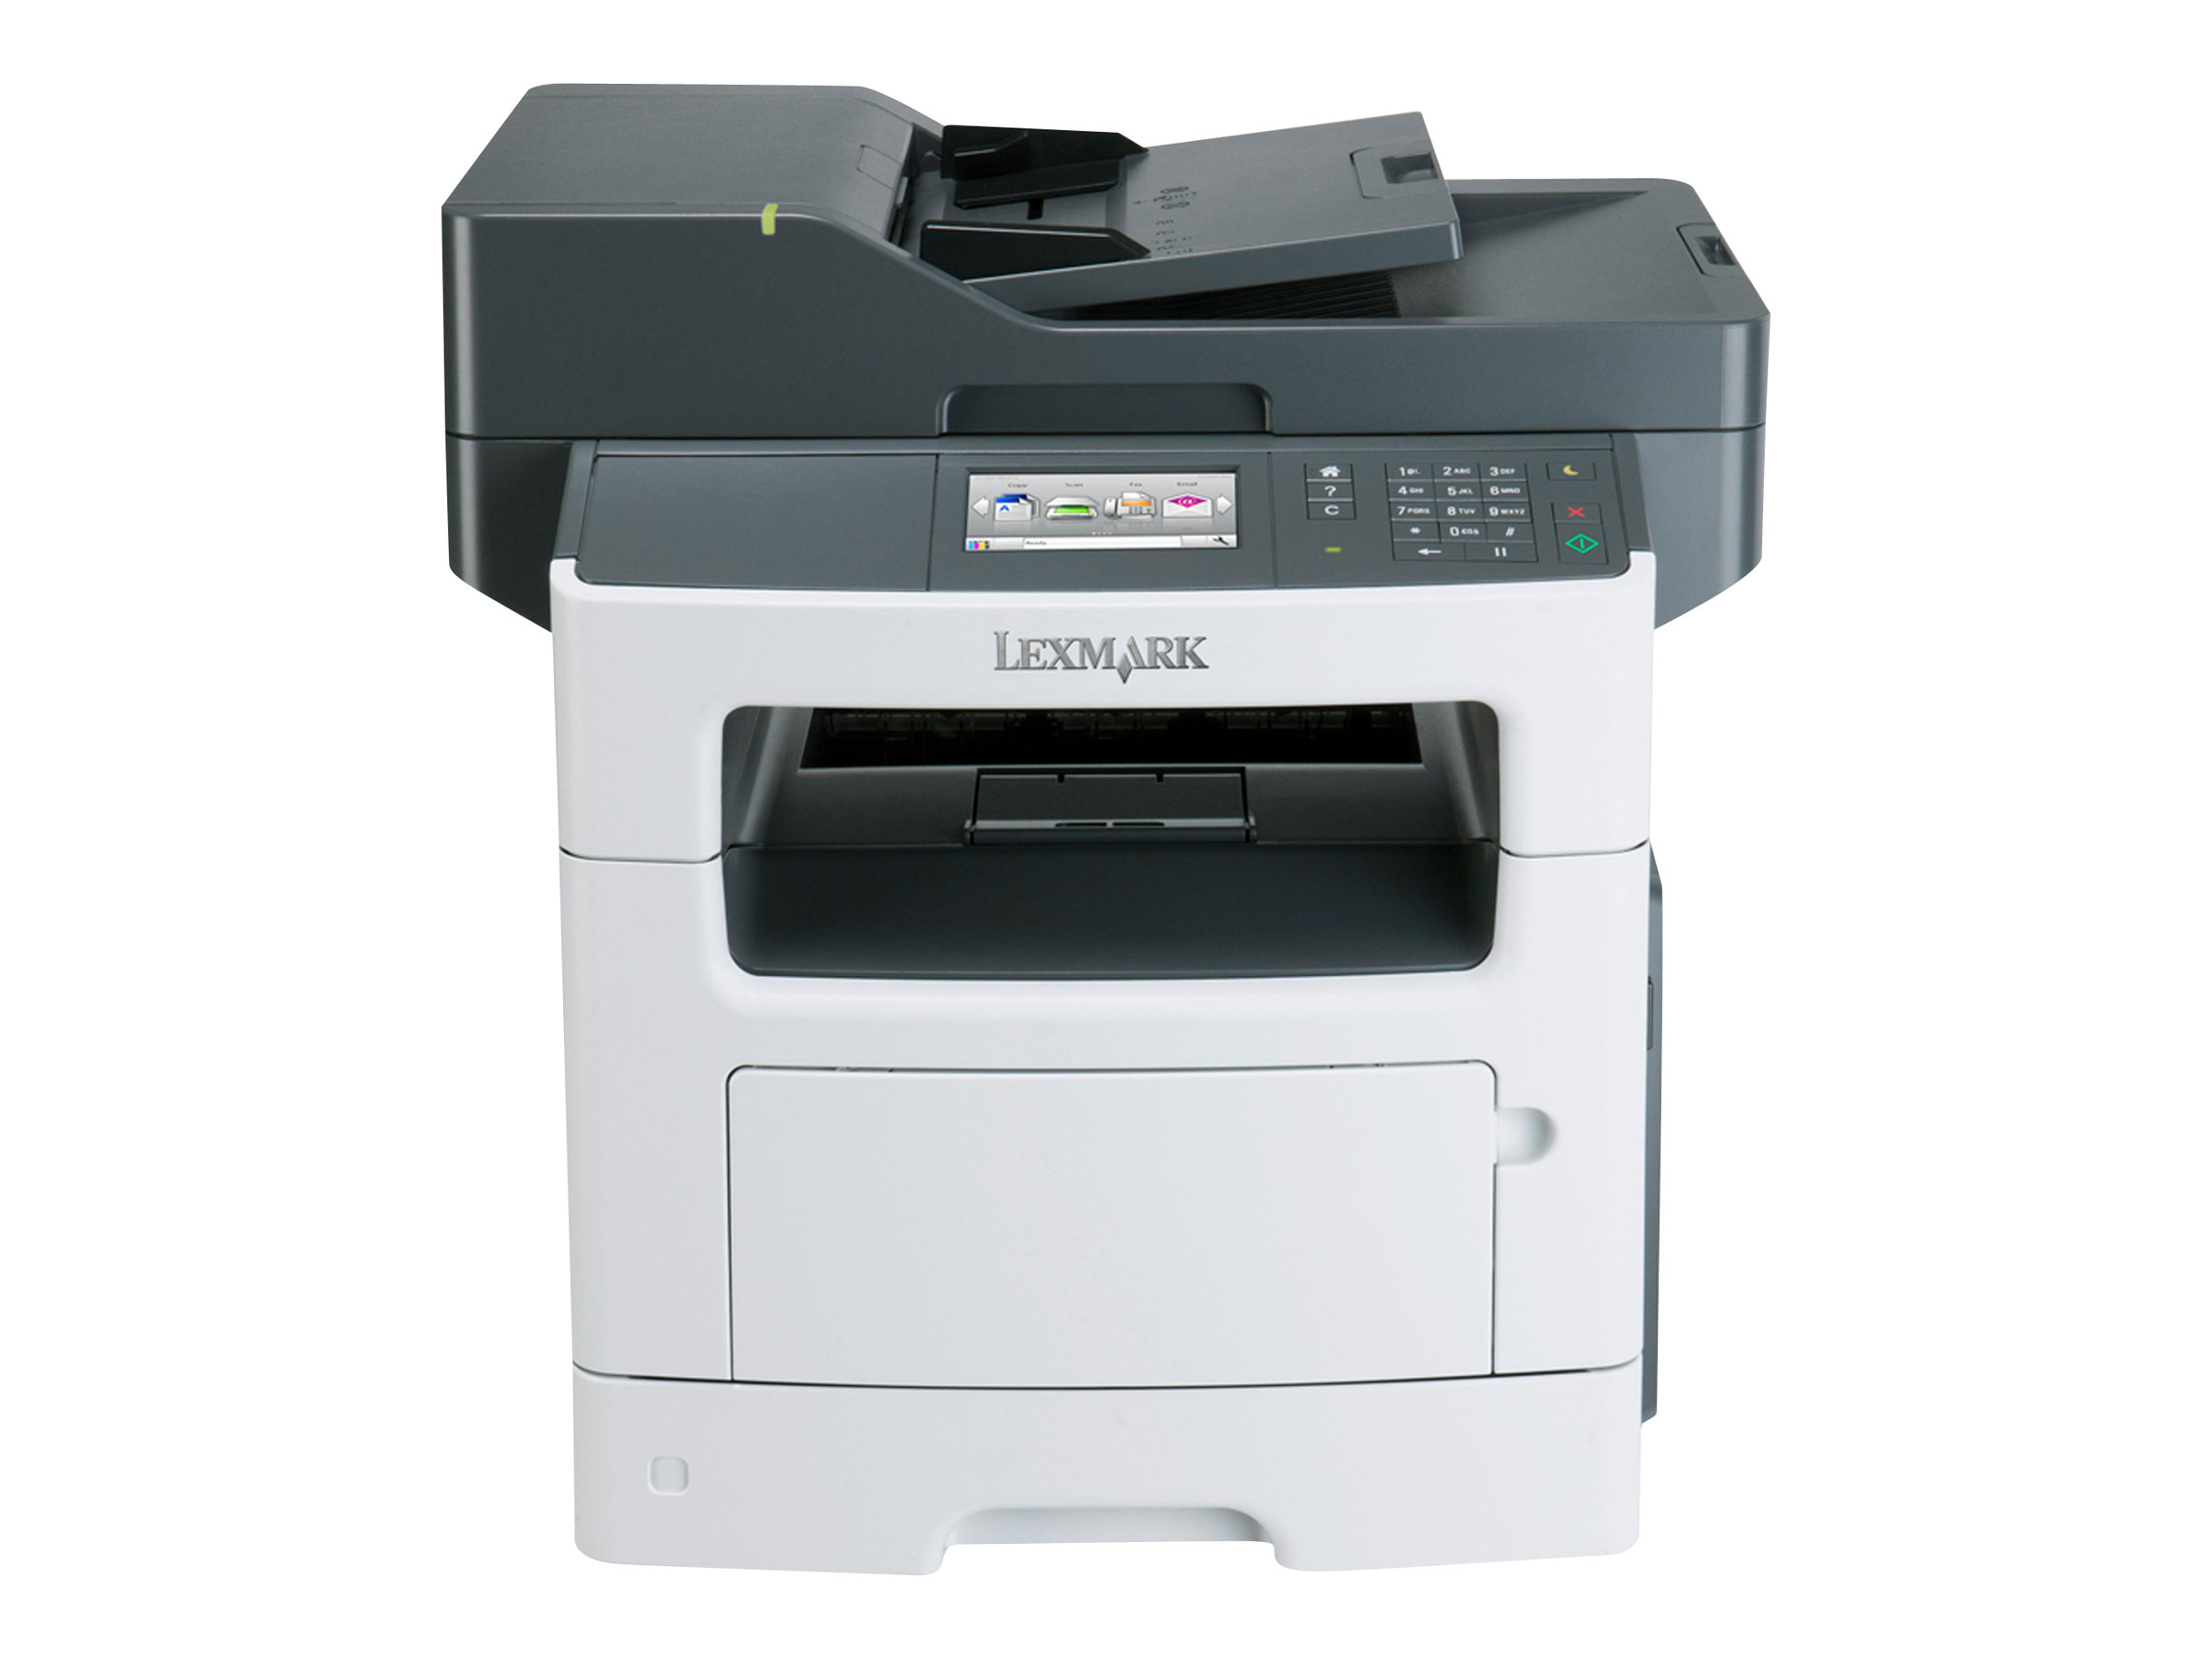 Lexmark MX510de - Multifunktionsdrucker - s/w - Laser - Legal (216 x 356 mm) (Original) - A4/Legal (Medien)